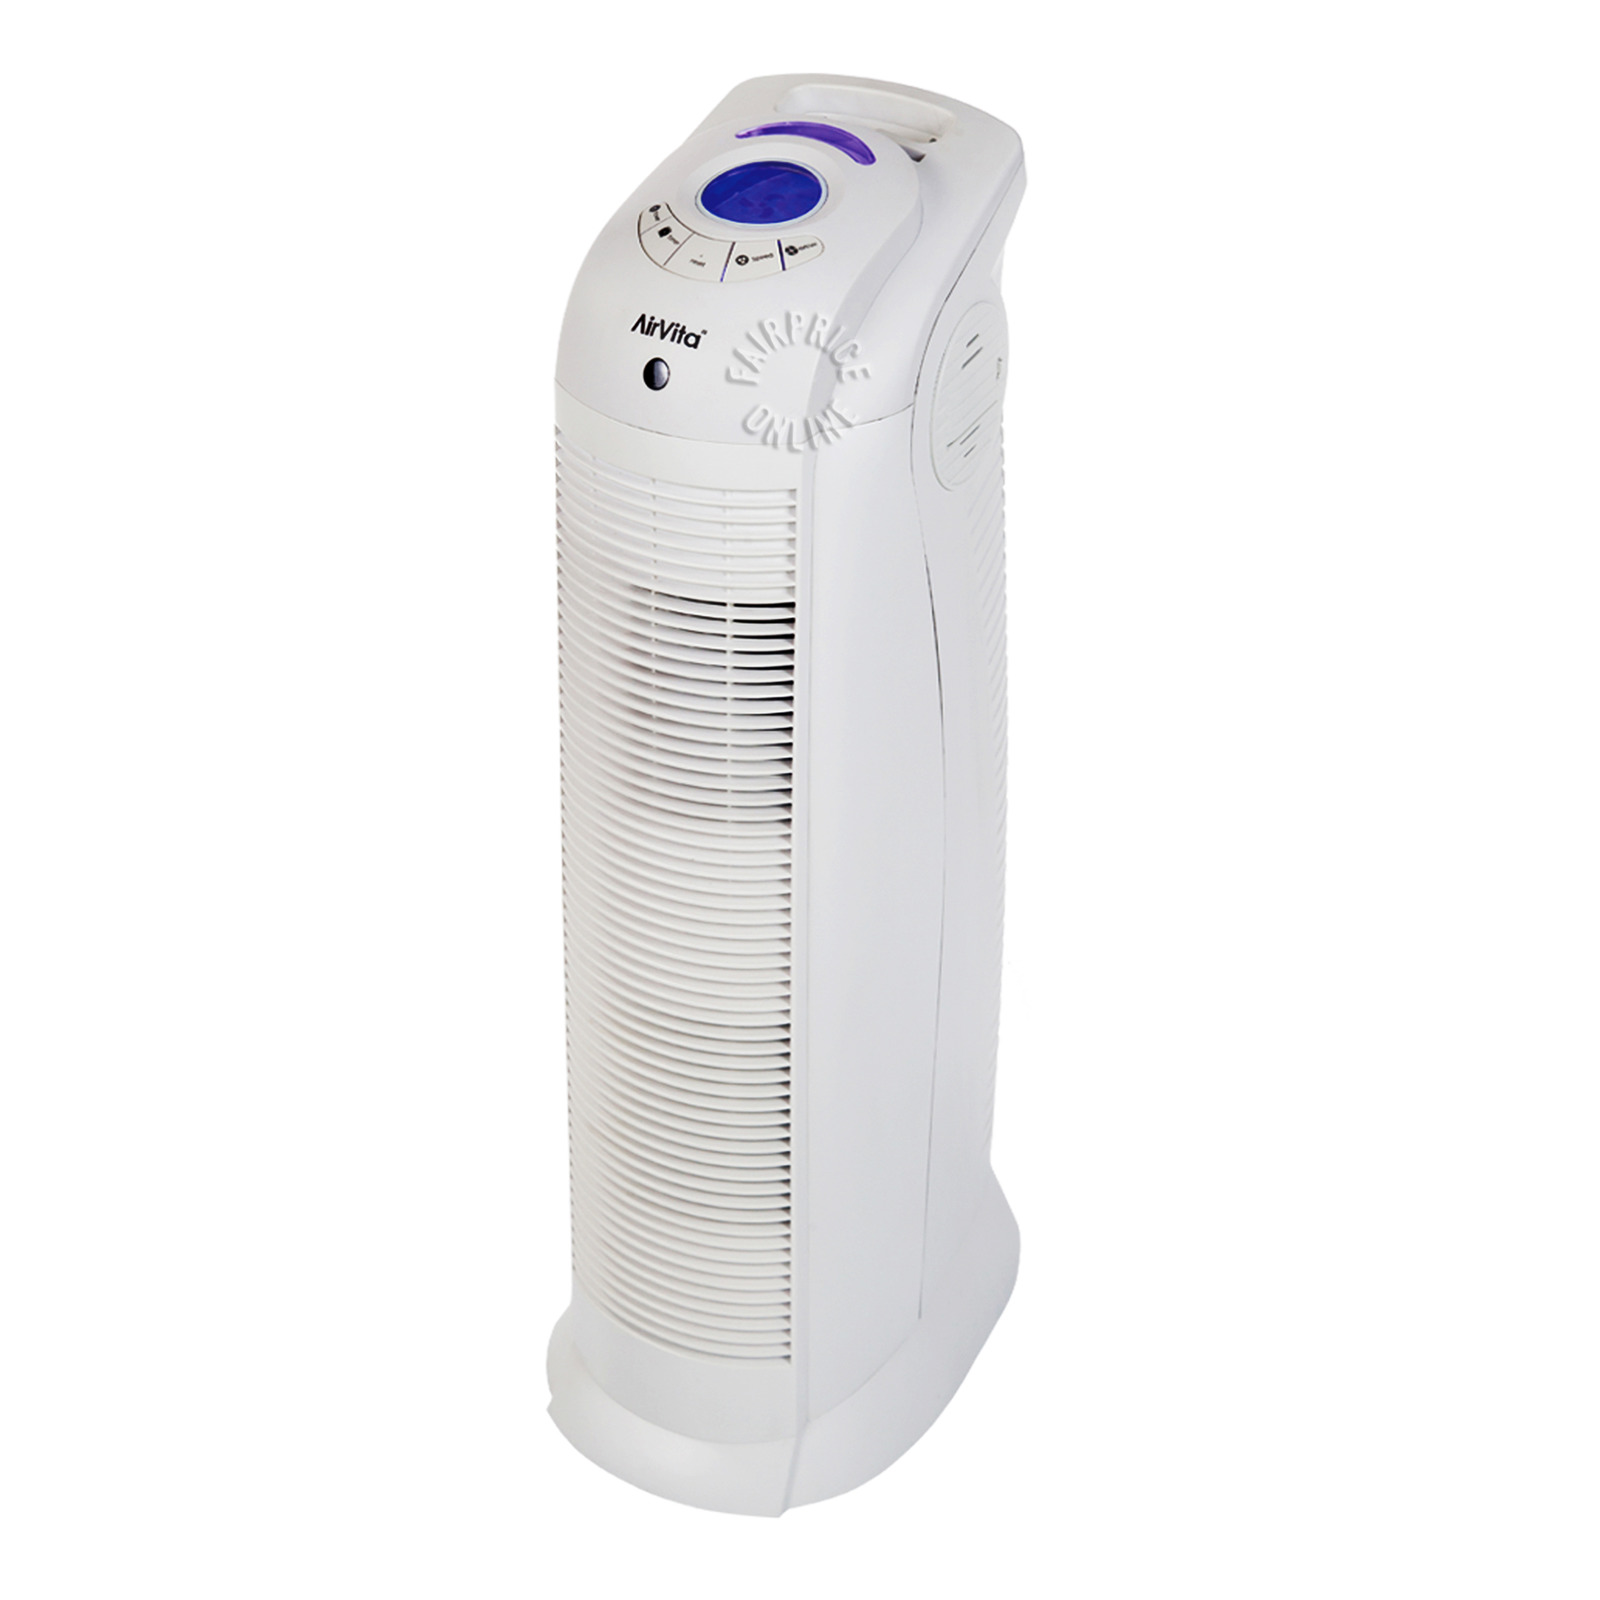 Olee Compact HEPA Tower Air Purifier (AirVita 400)